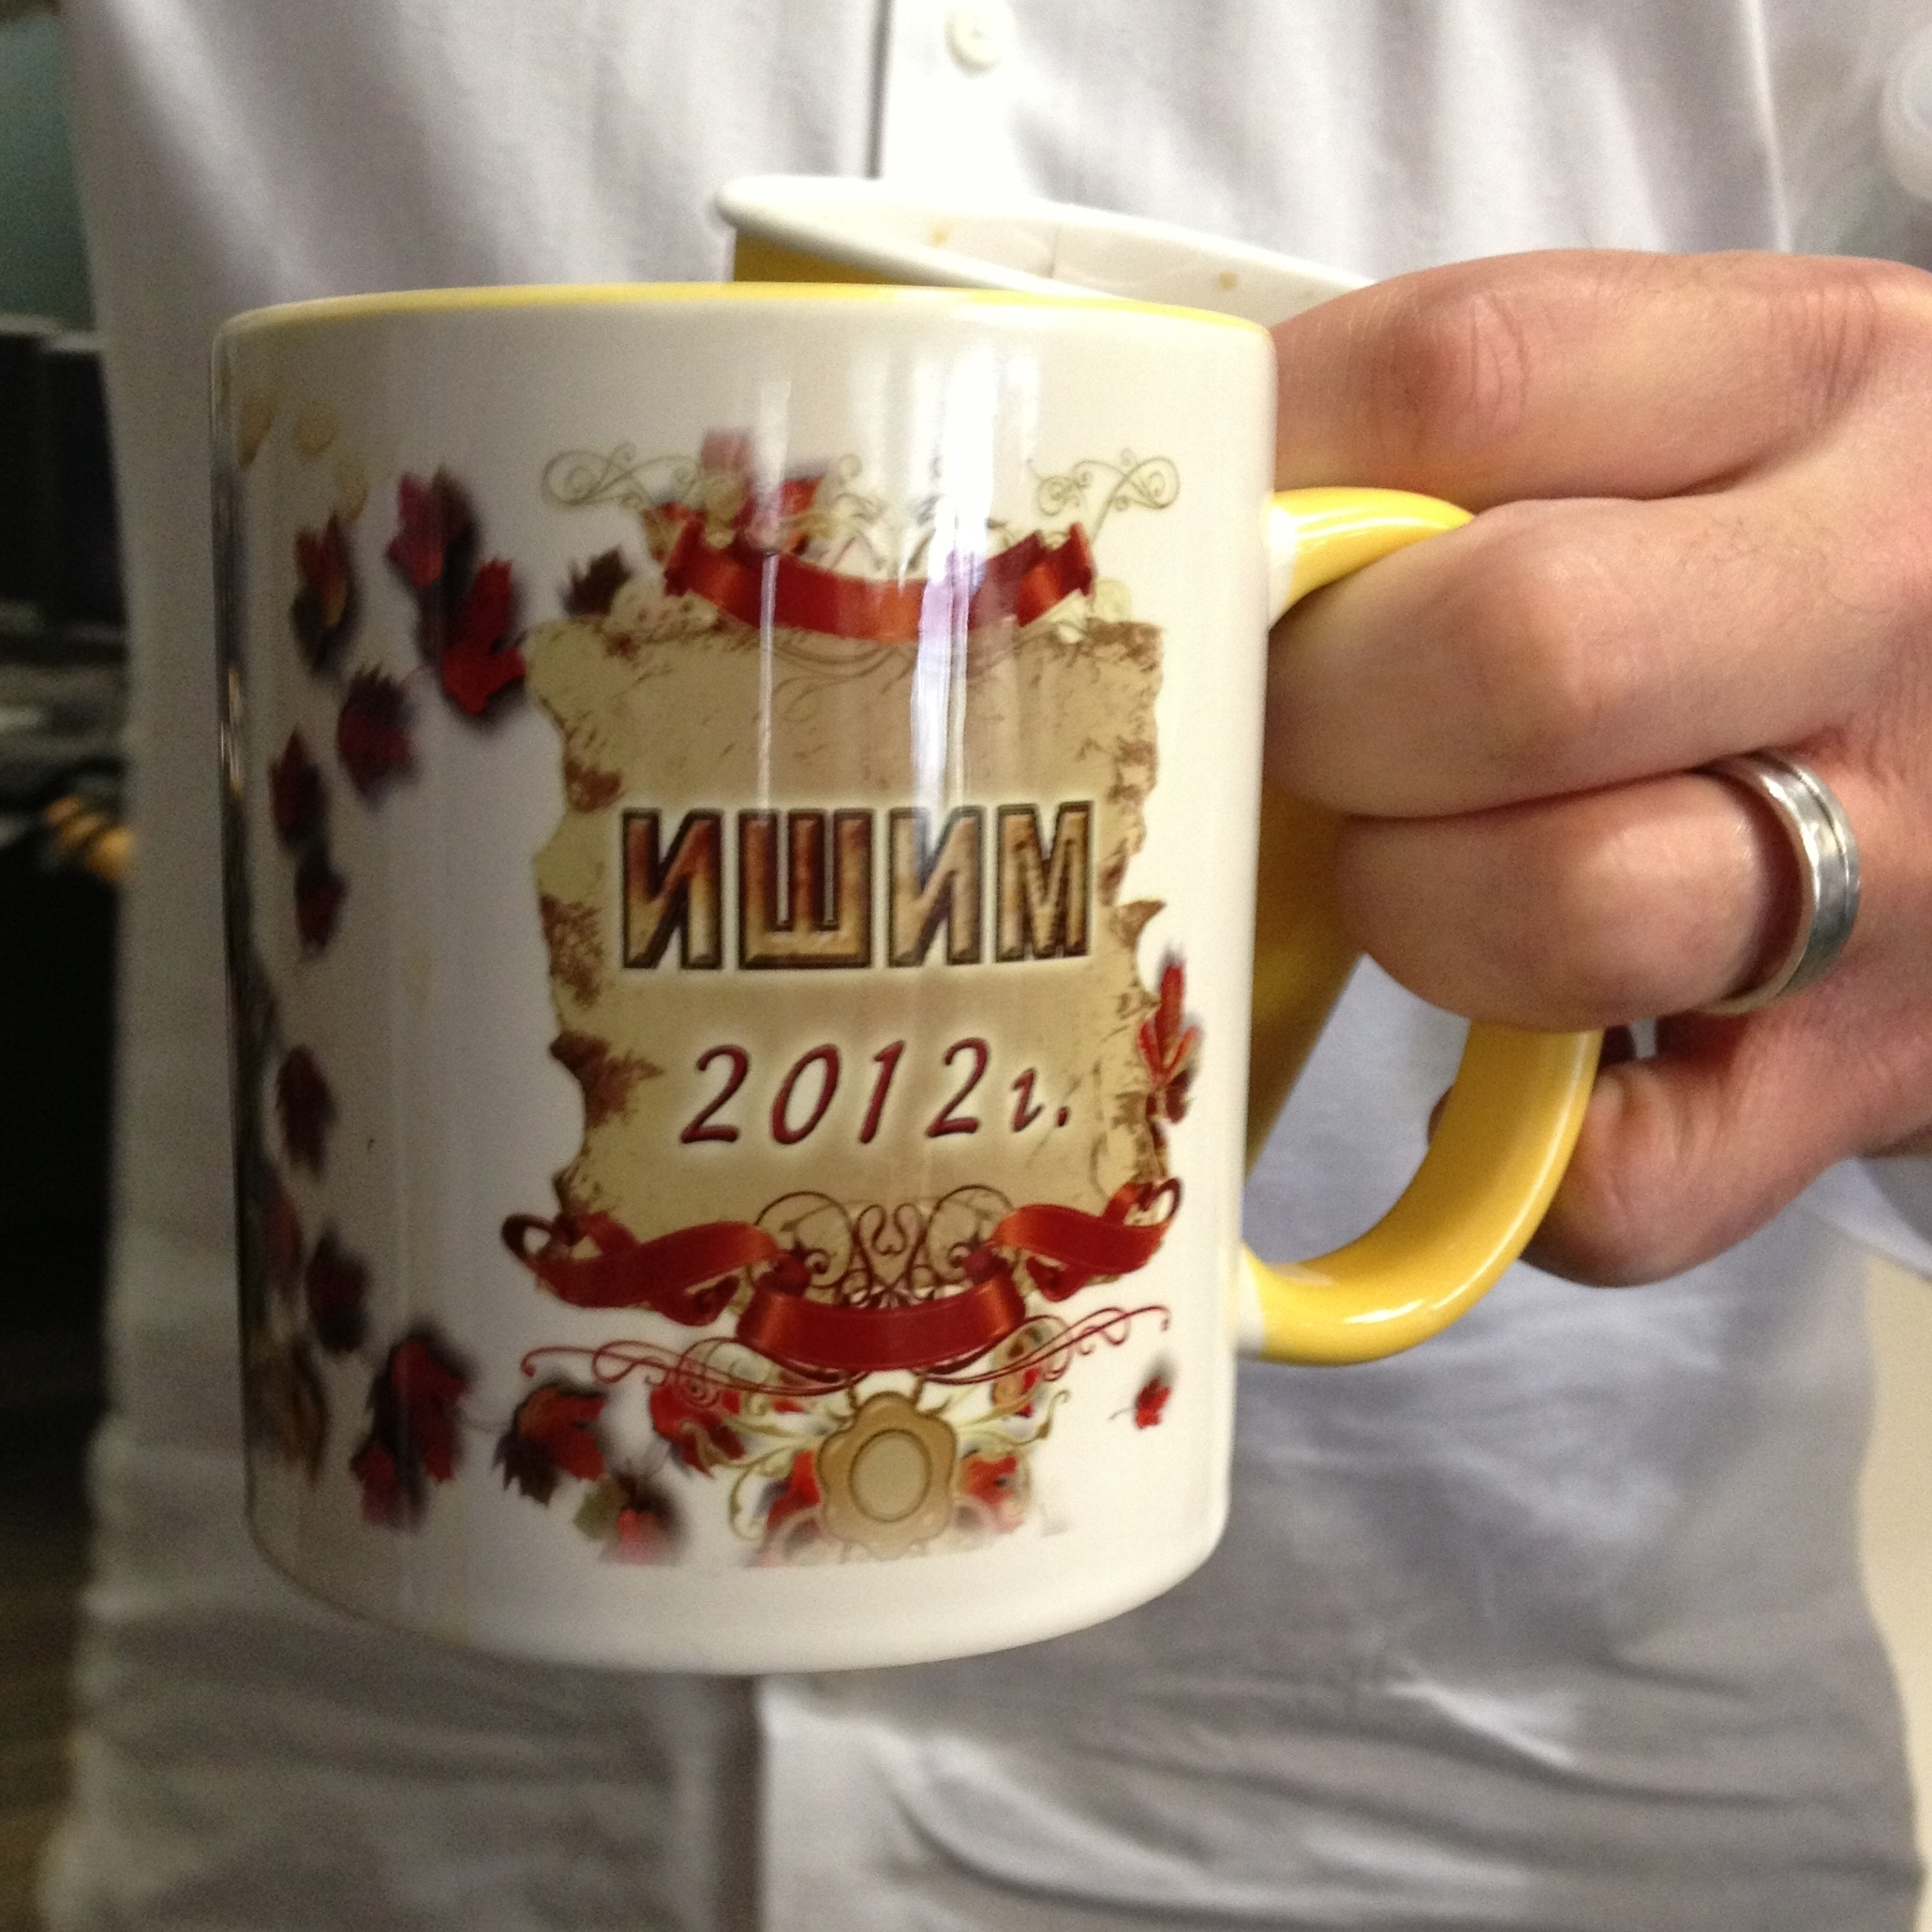 This mug is a carries the names of a city in Siberia, a favorite of this former Moscow's bureau chief. See the mug behind this mug shot: http://n.pr/zmIqIS